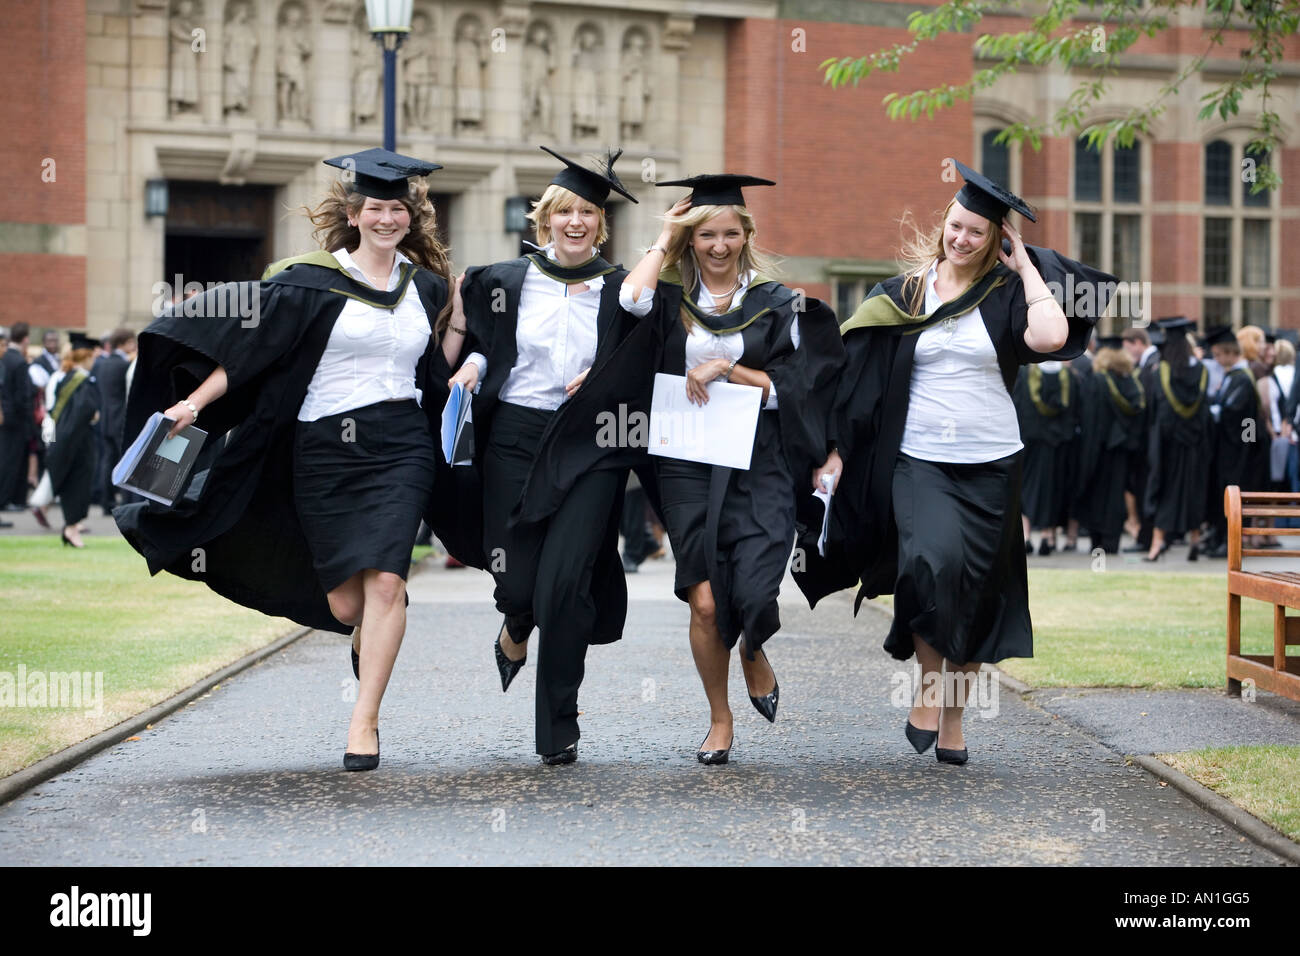 Graduation day at University of Birmingham , England Students at ...